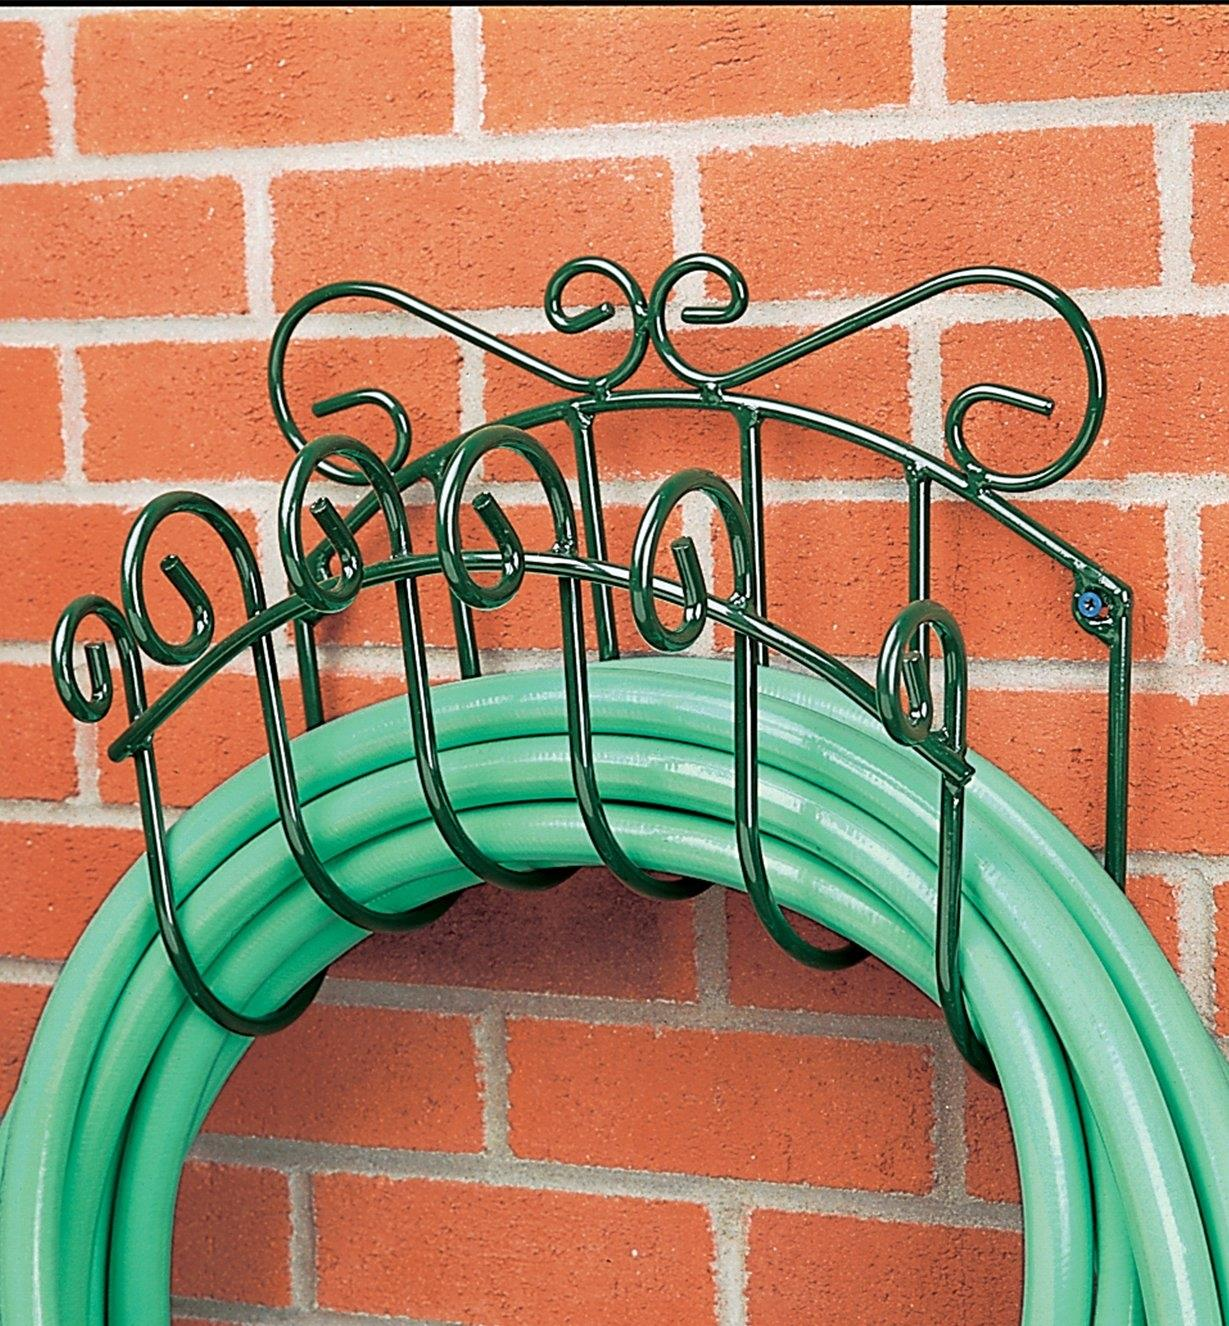 Wrought-Iron Hose Hanger with a hose coiled around it mounted on a wall